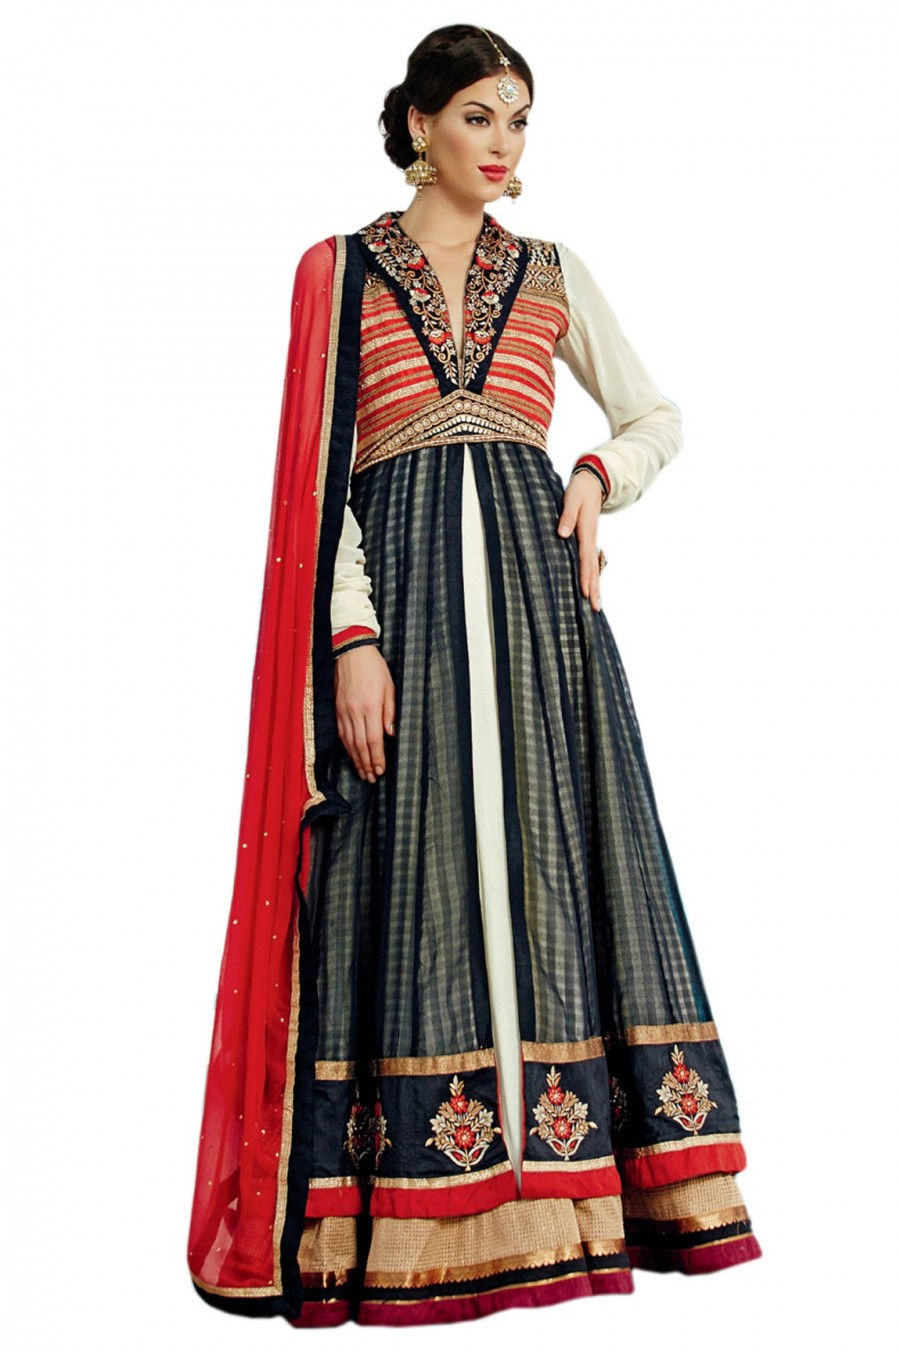 Buy Cream and Navy Blue Banarasi Anarkali Suit Comprising Floral Embroidery Work with Dupatta Online